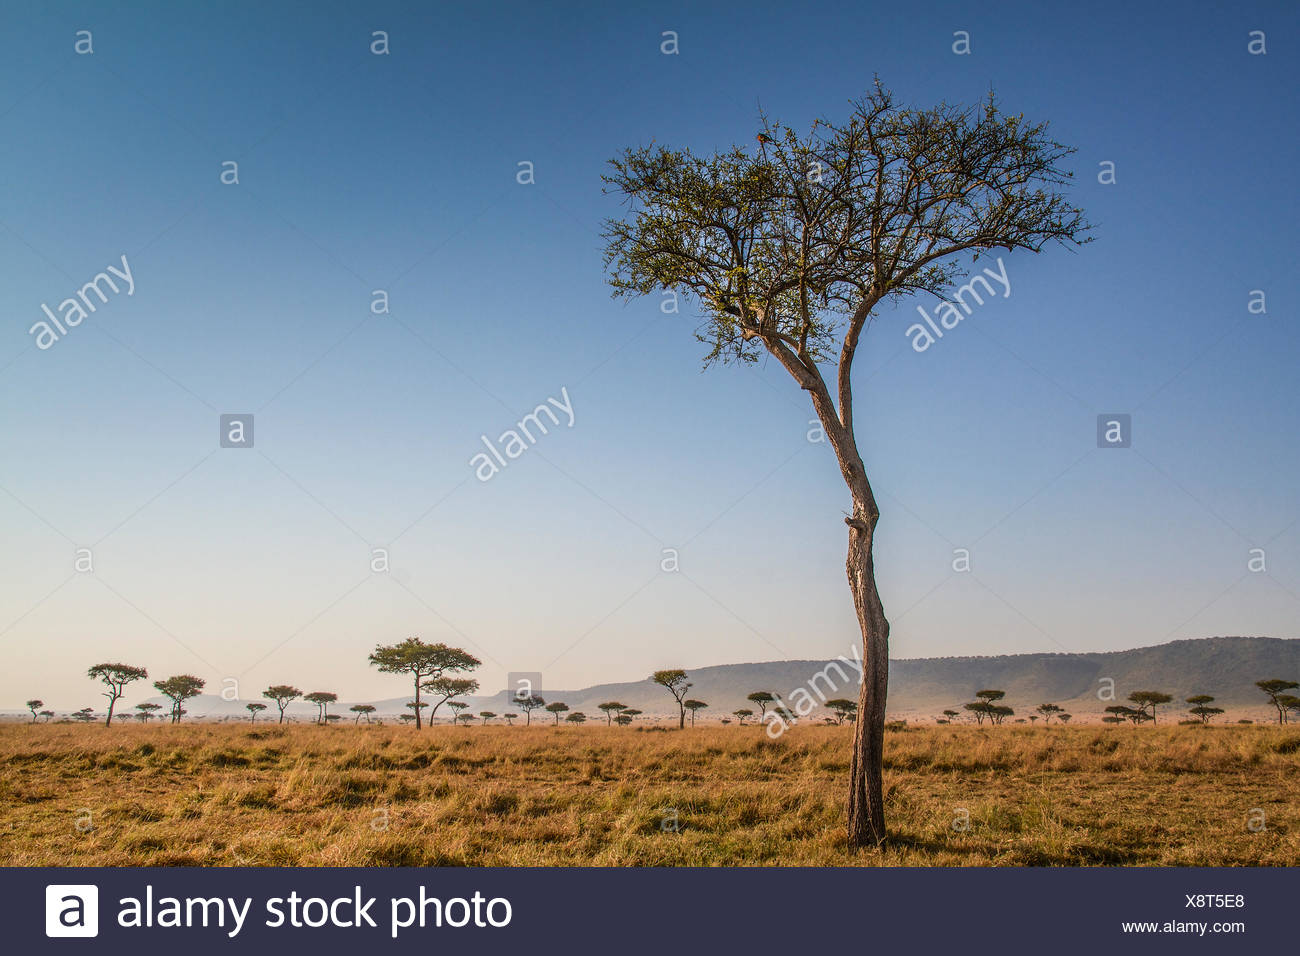 Kenya, Masai Mara, Trees in plain - Stock Image